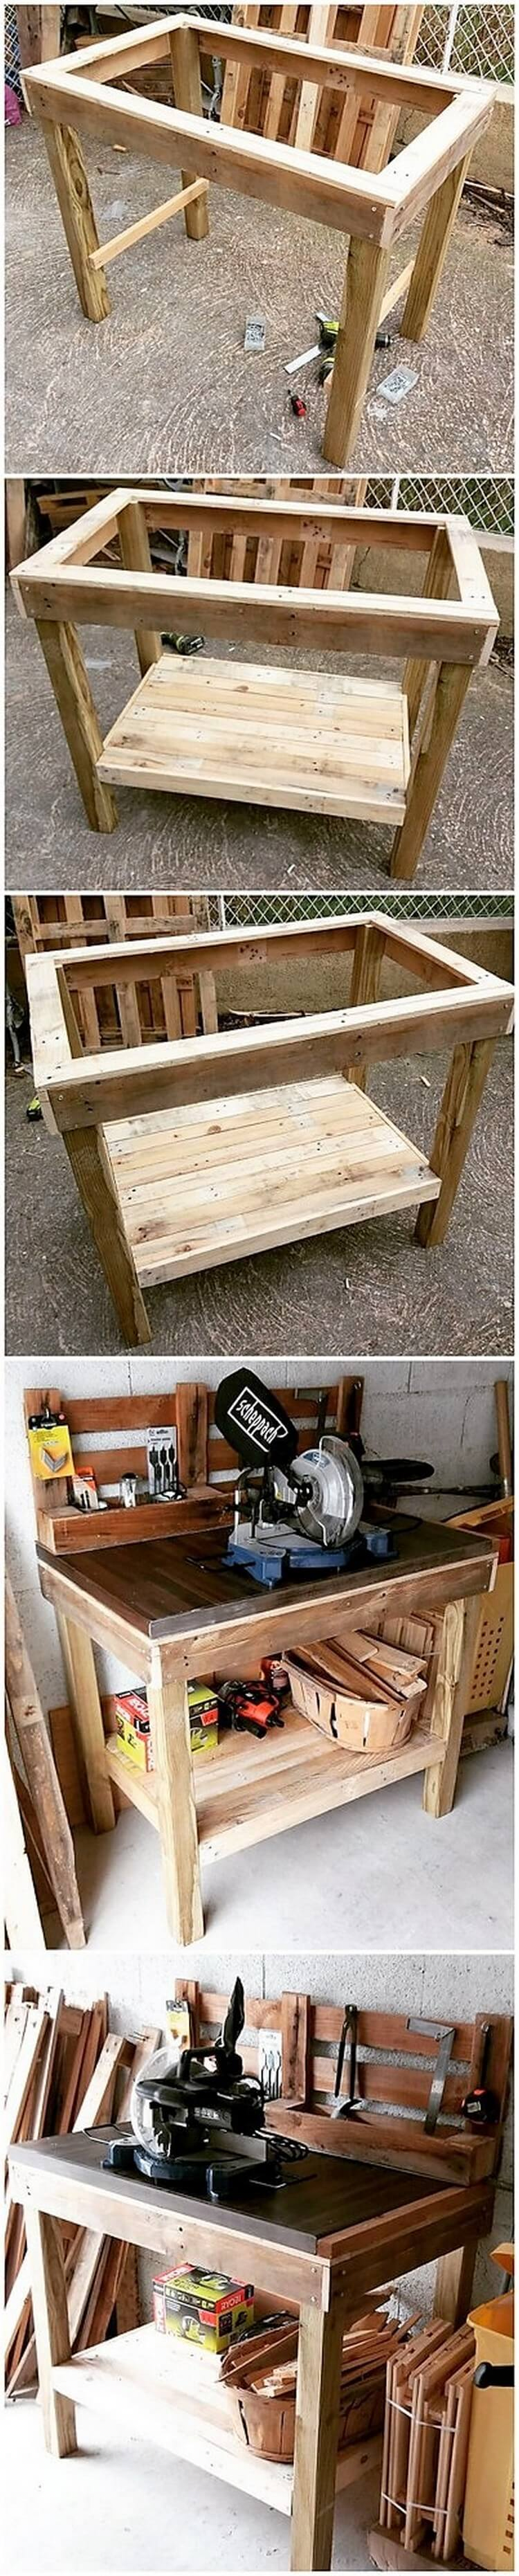 DIY Pallet Work Table